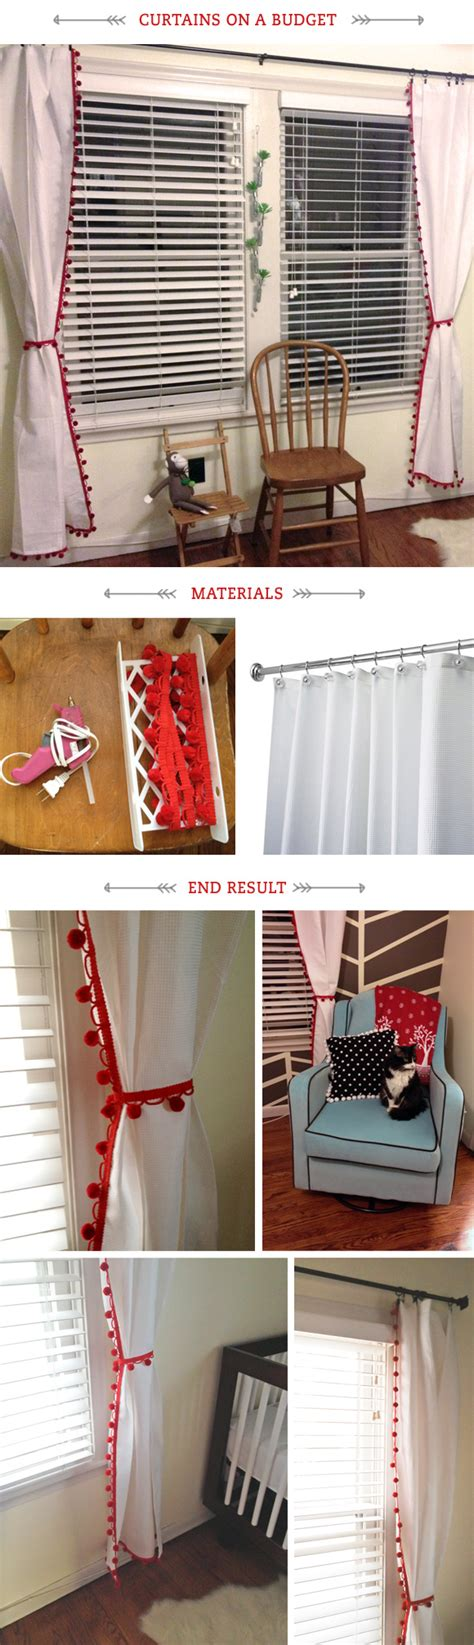 Nursery Diy Curtains Amalia Misc Diy Nursery Curtains